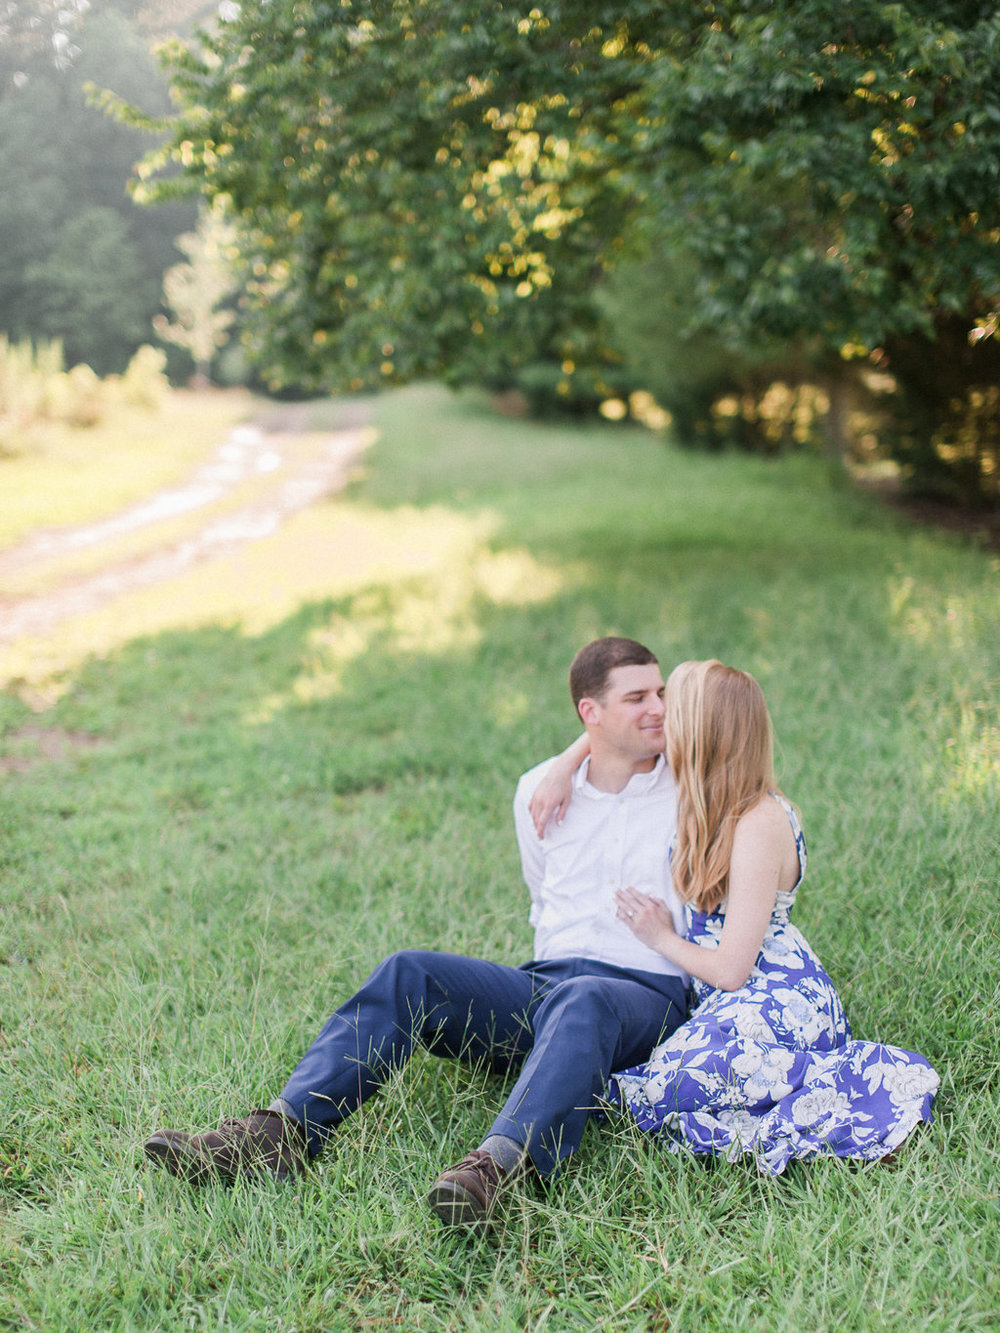 Woodstock-Engagement-Session-atlanta-wedding-photographer-hannah-forsberg-6.jpg